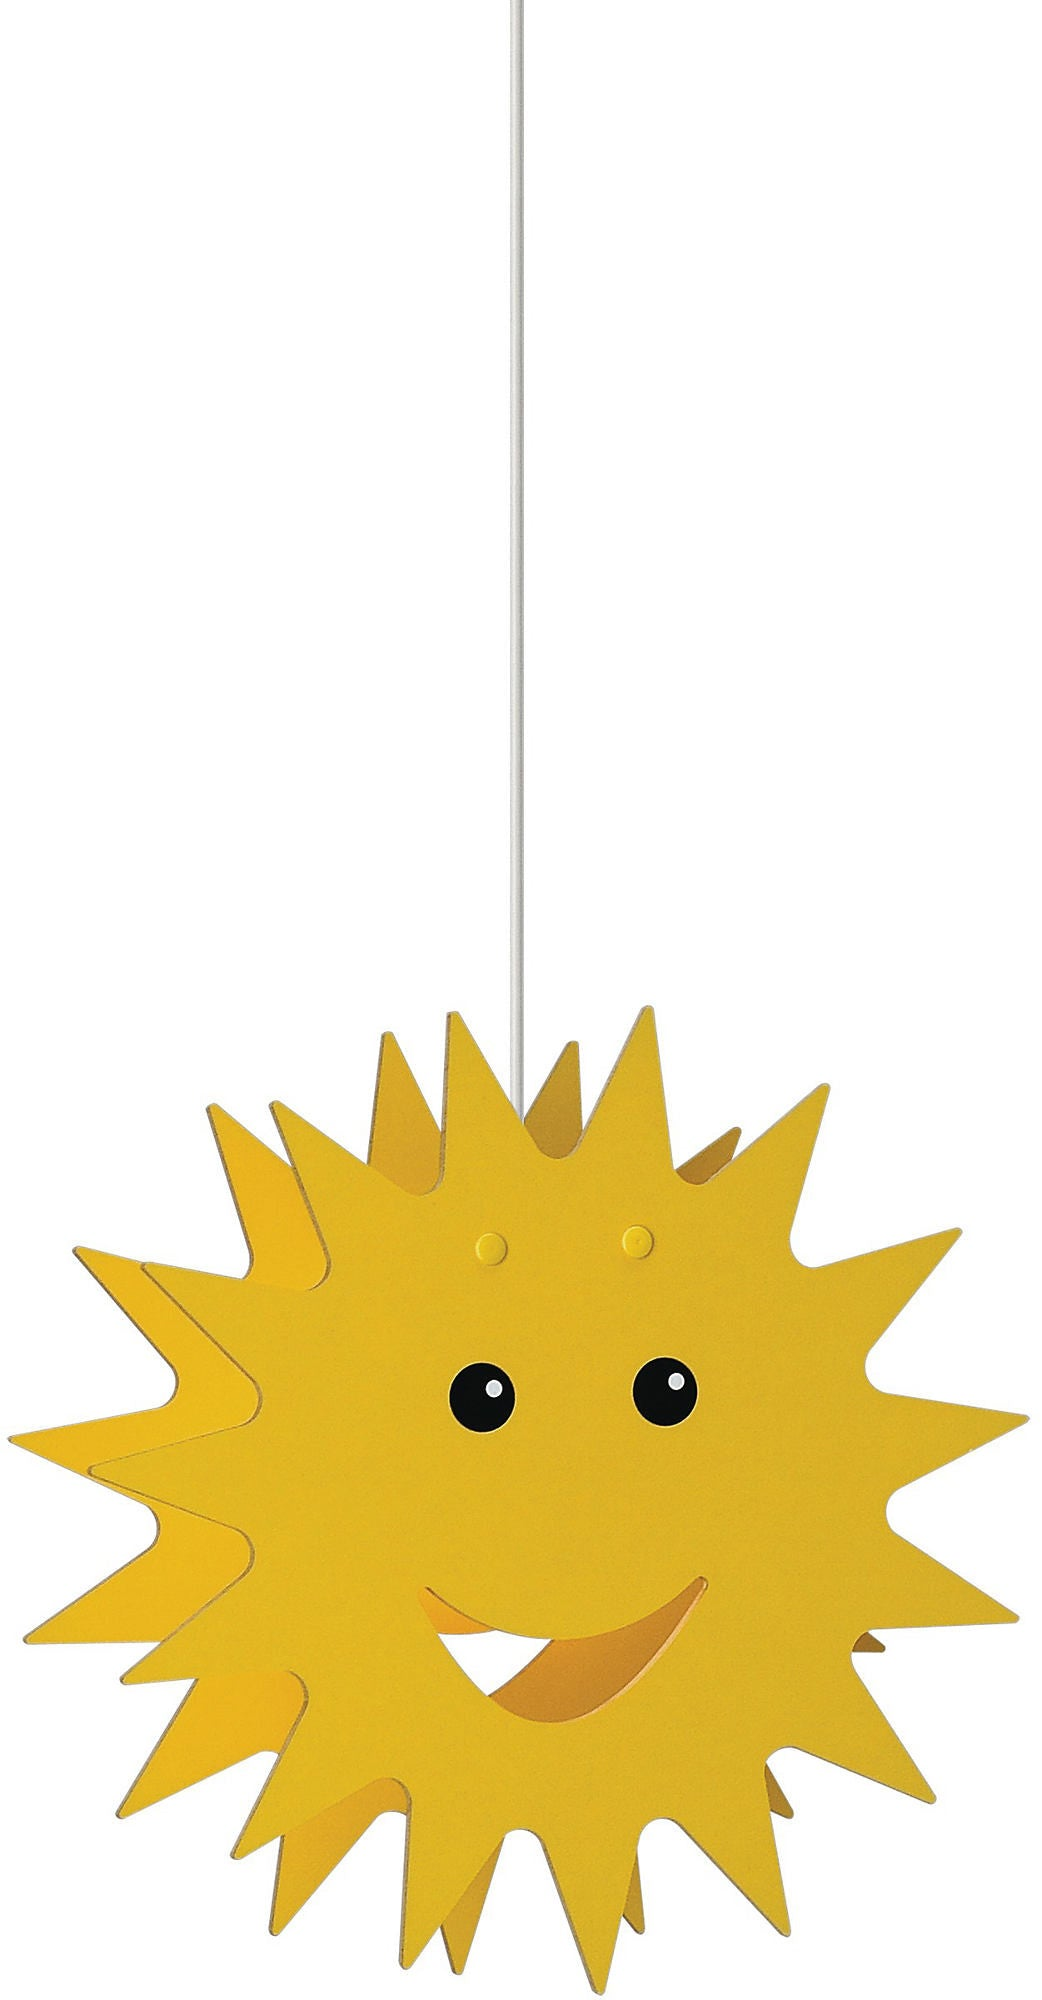 Philips Kidsplace 'Smiley Sun' Suspension Light (Adjustable Height)